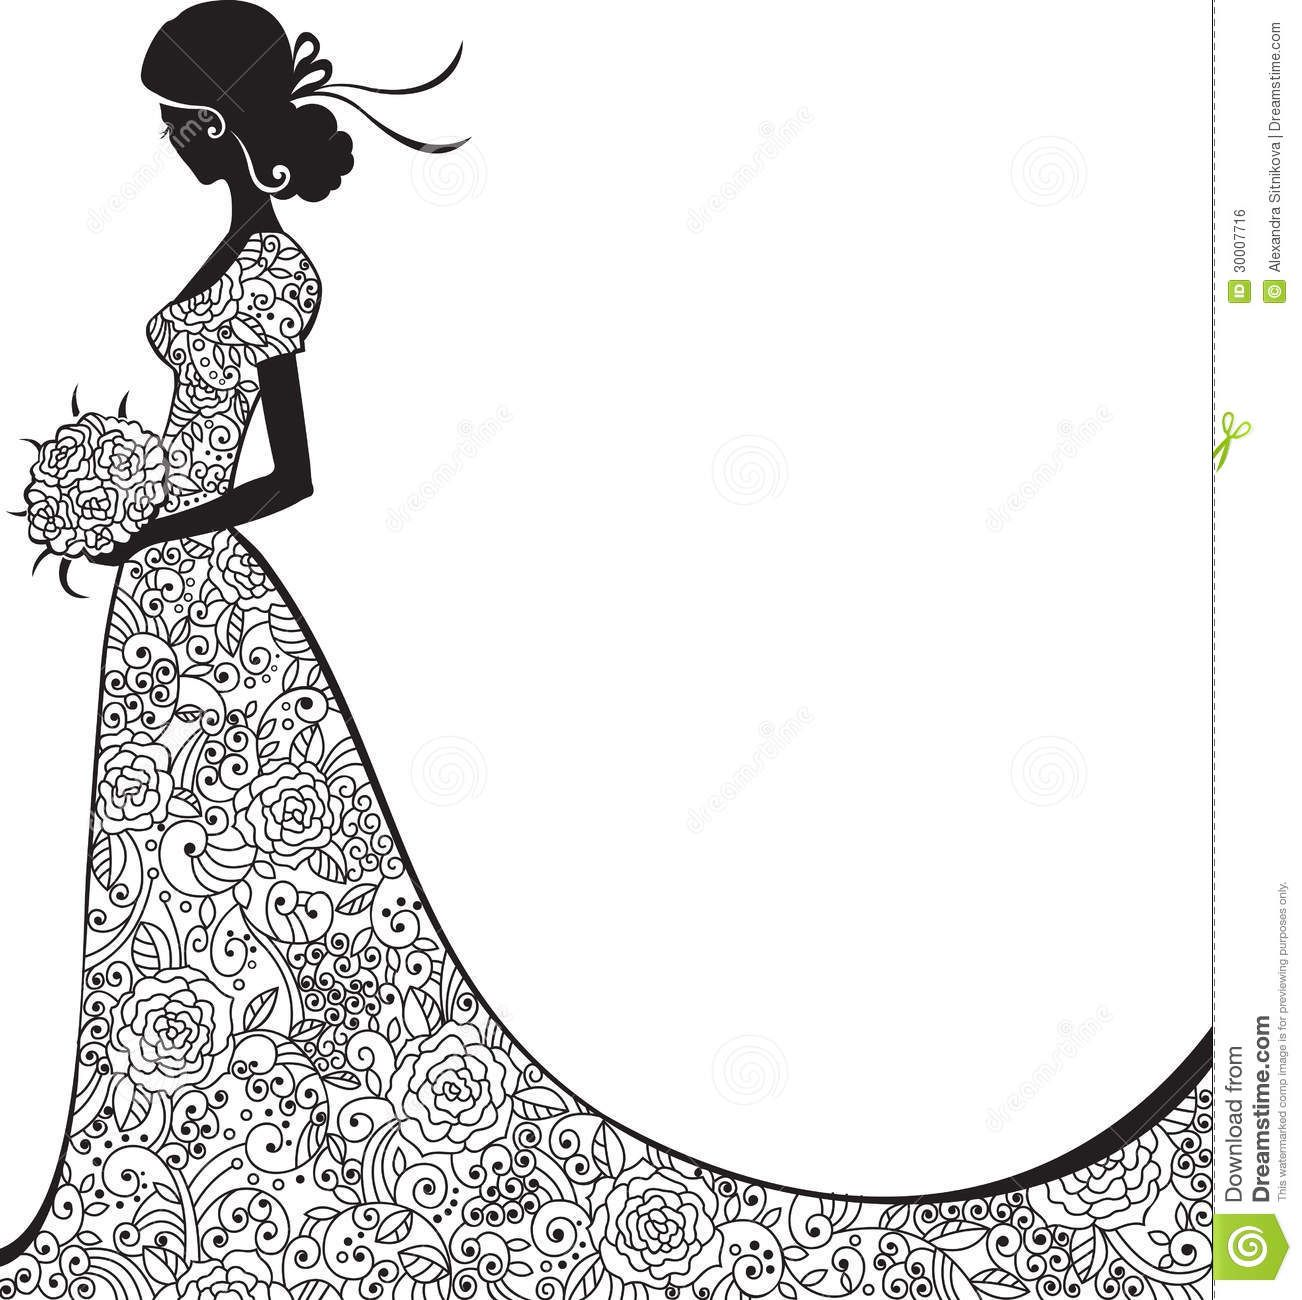 hight resolution of bride silhouette black and white google wedding silhouette couple silhouette silhouette